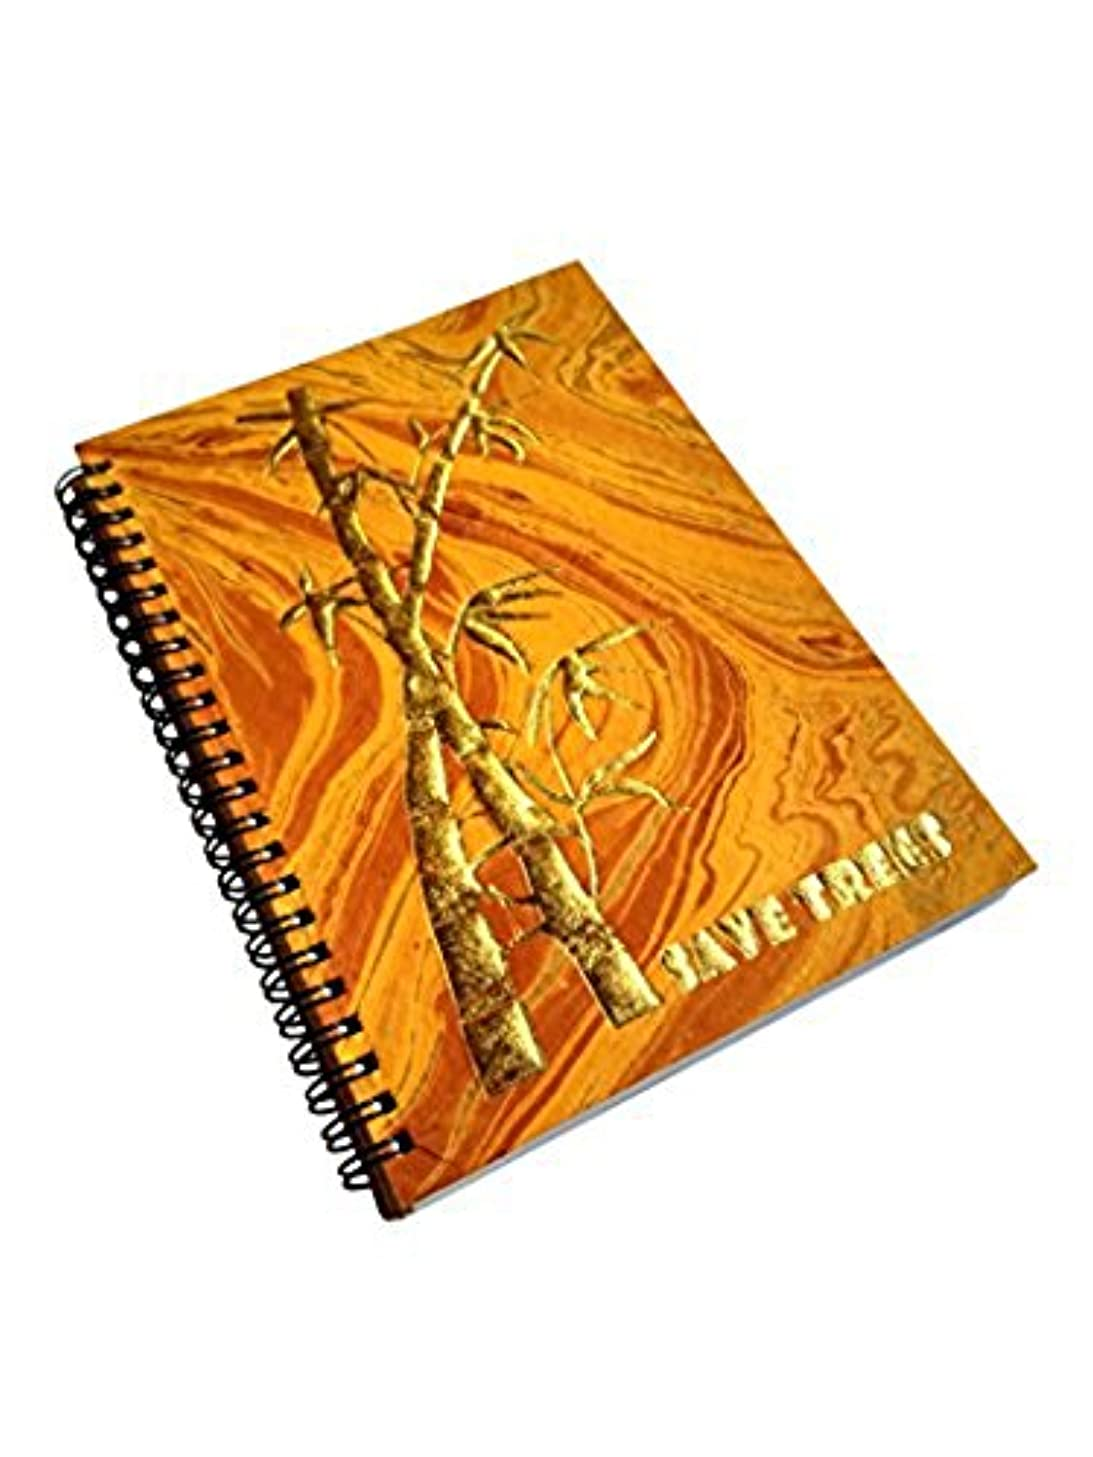 A5 Handmade Notebook, 100% Cotton, 120gsm,120 Pages, Golden Yellow Marbled Paper with Gold Embossed Artistic Design